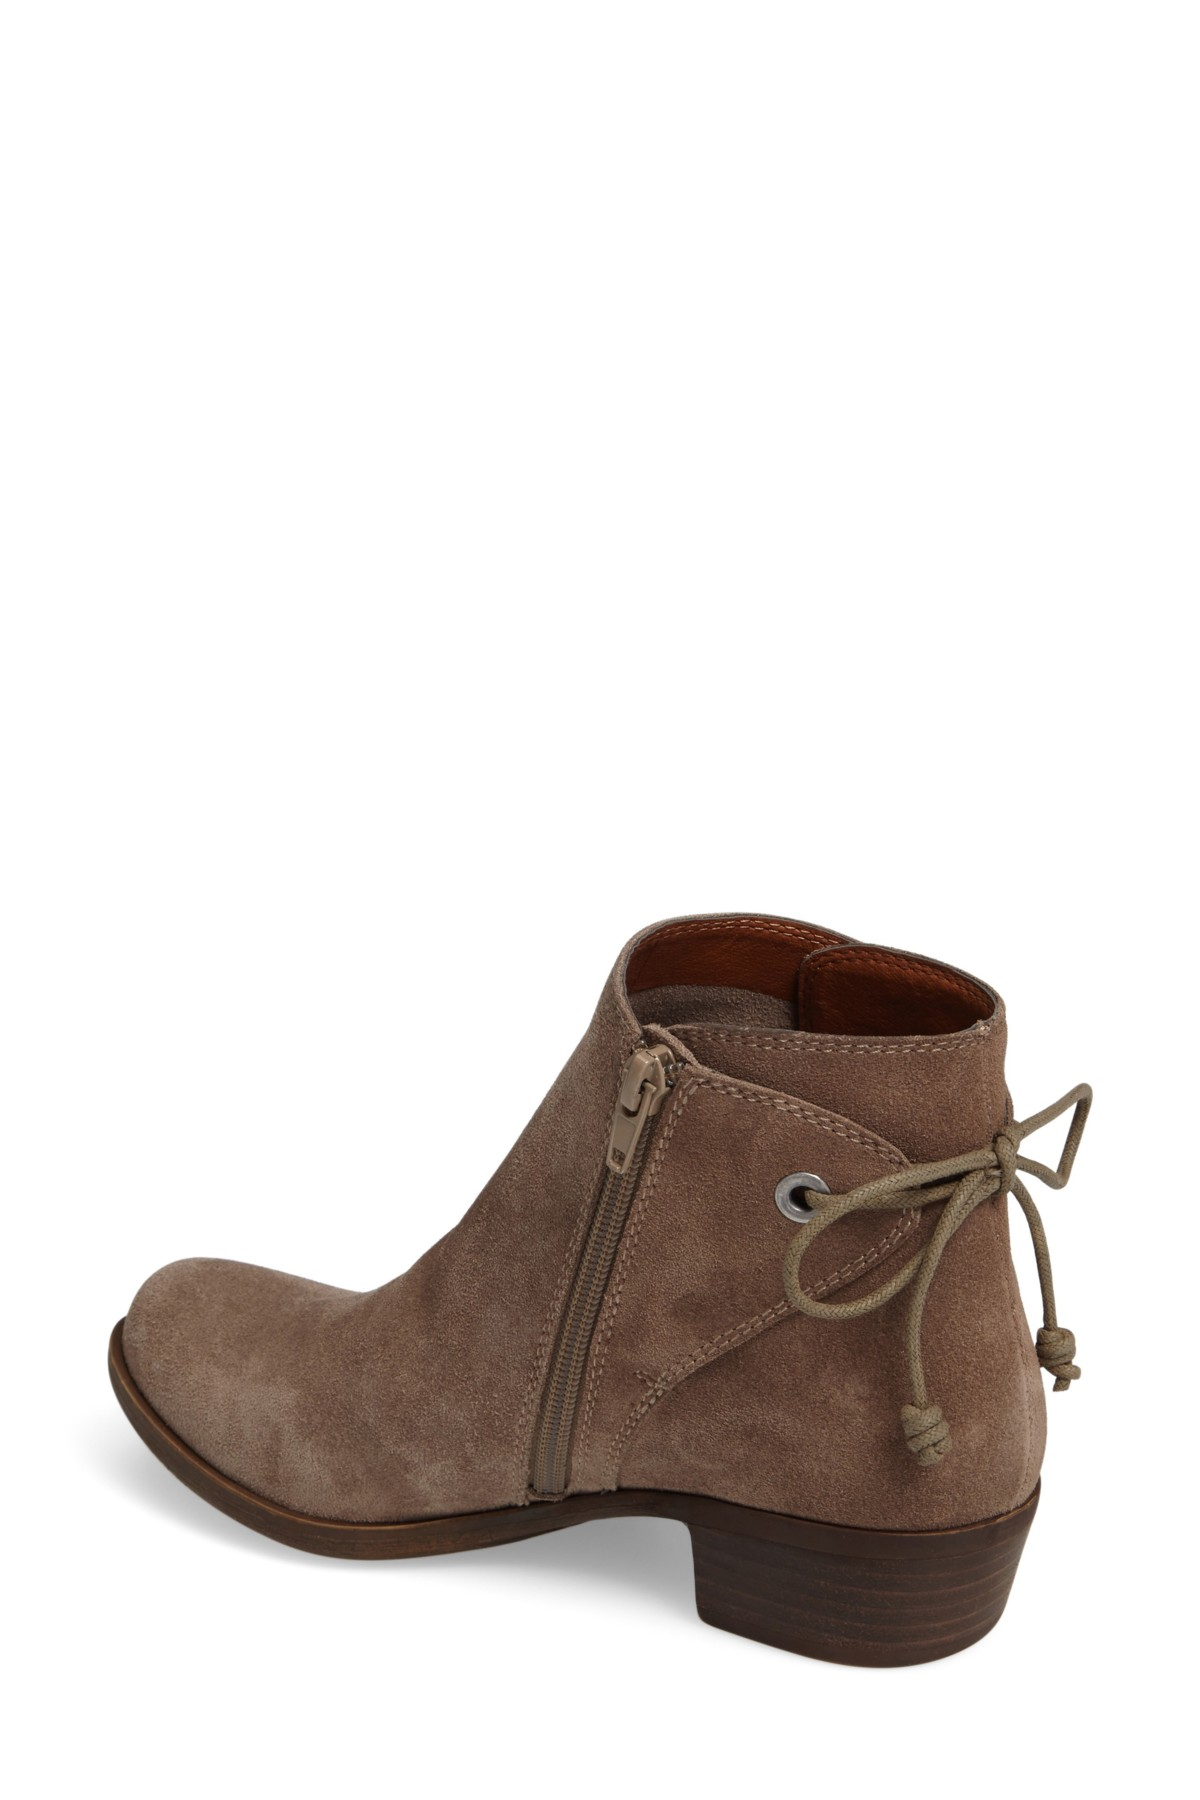 Lucky Brand Women/'s BWENORE Ankle Boot